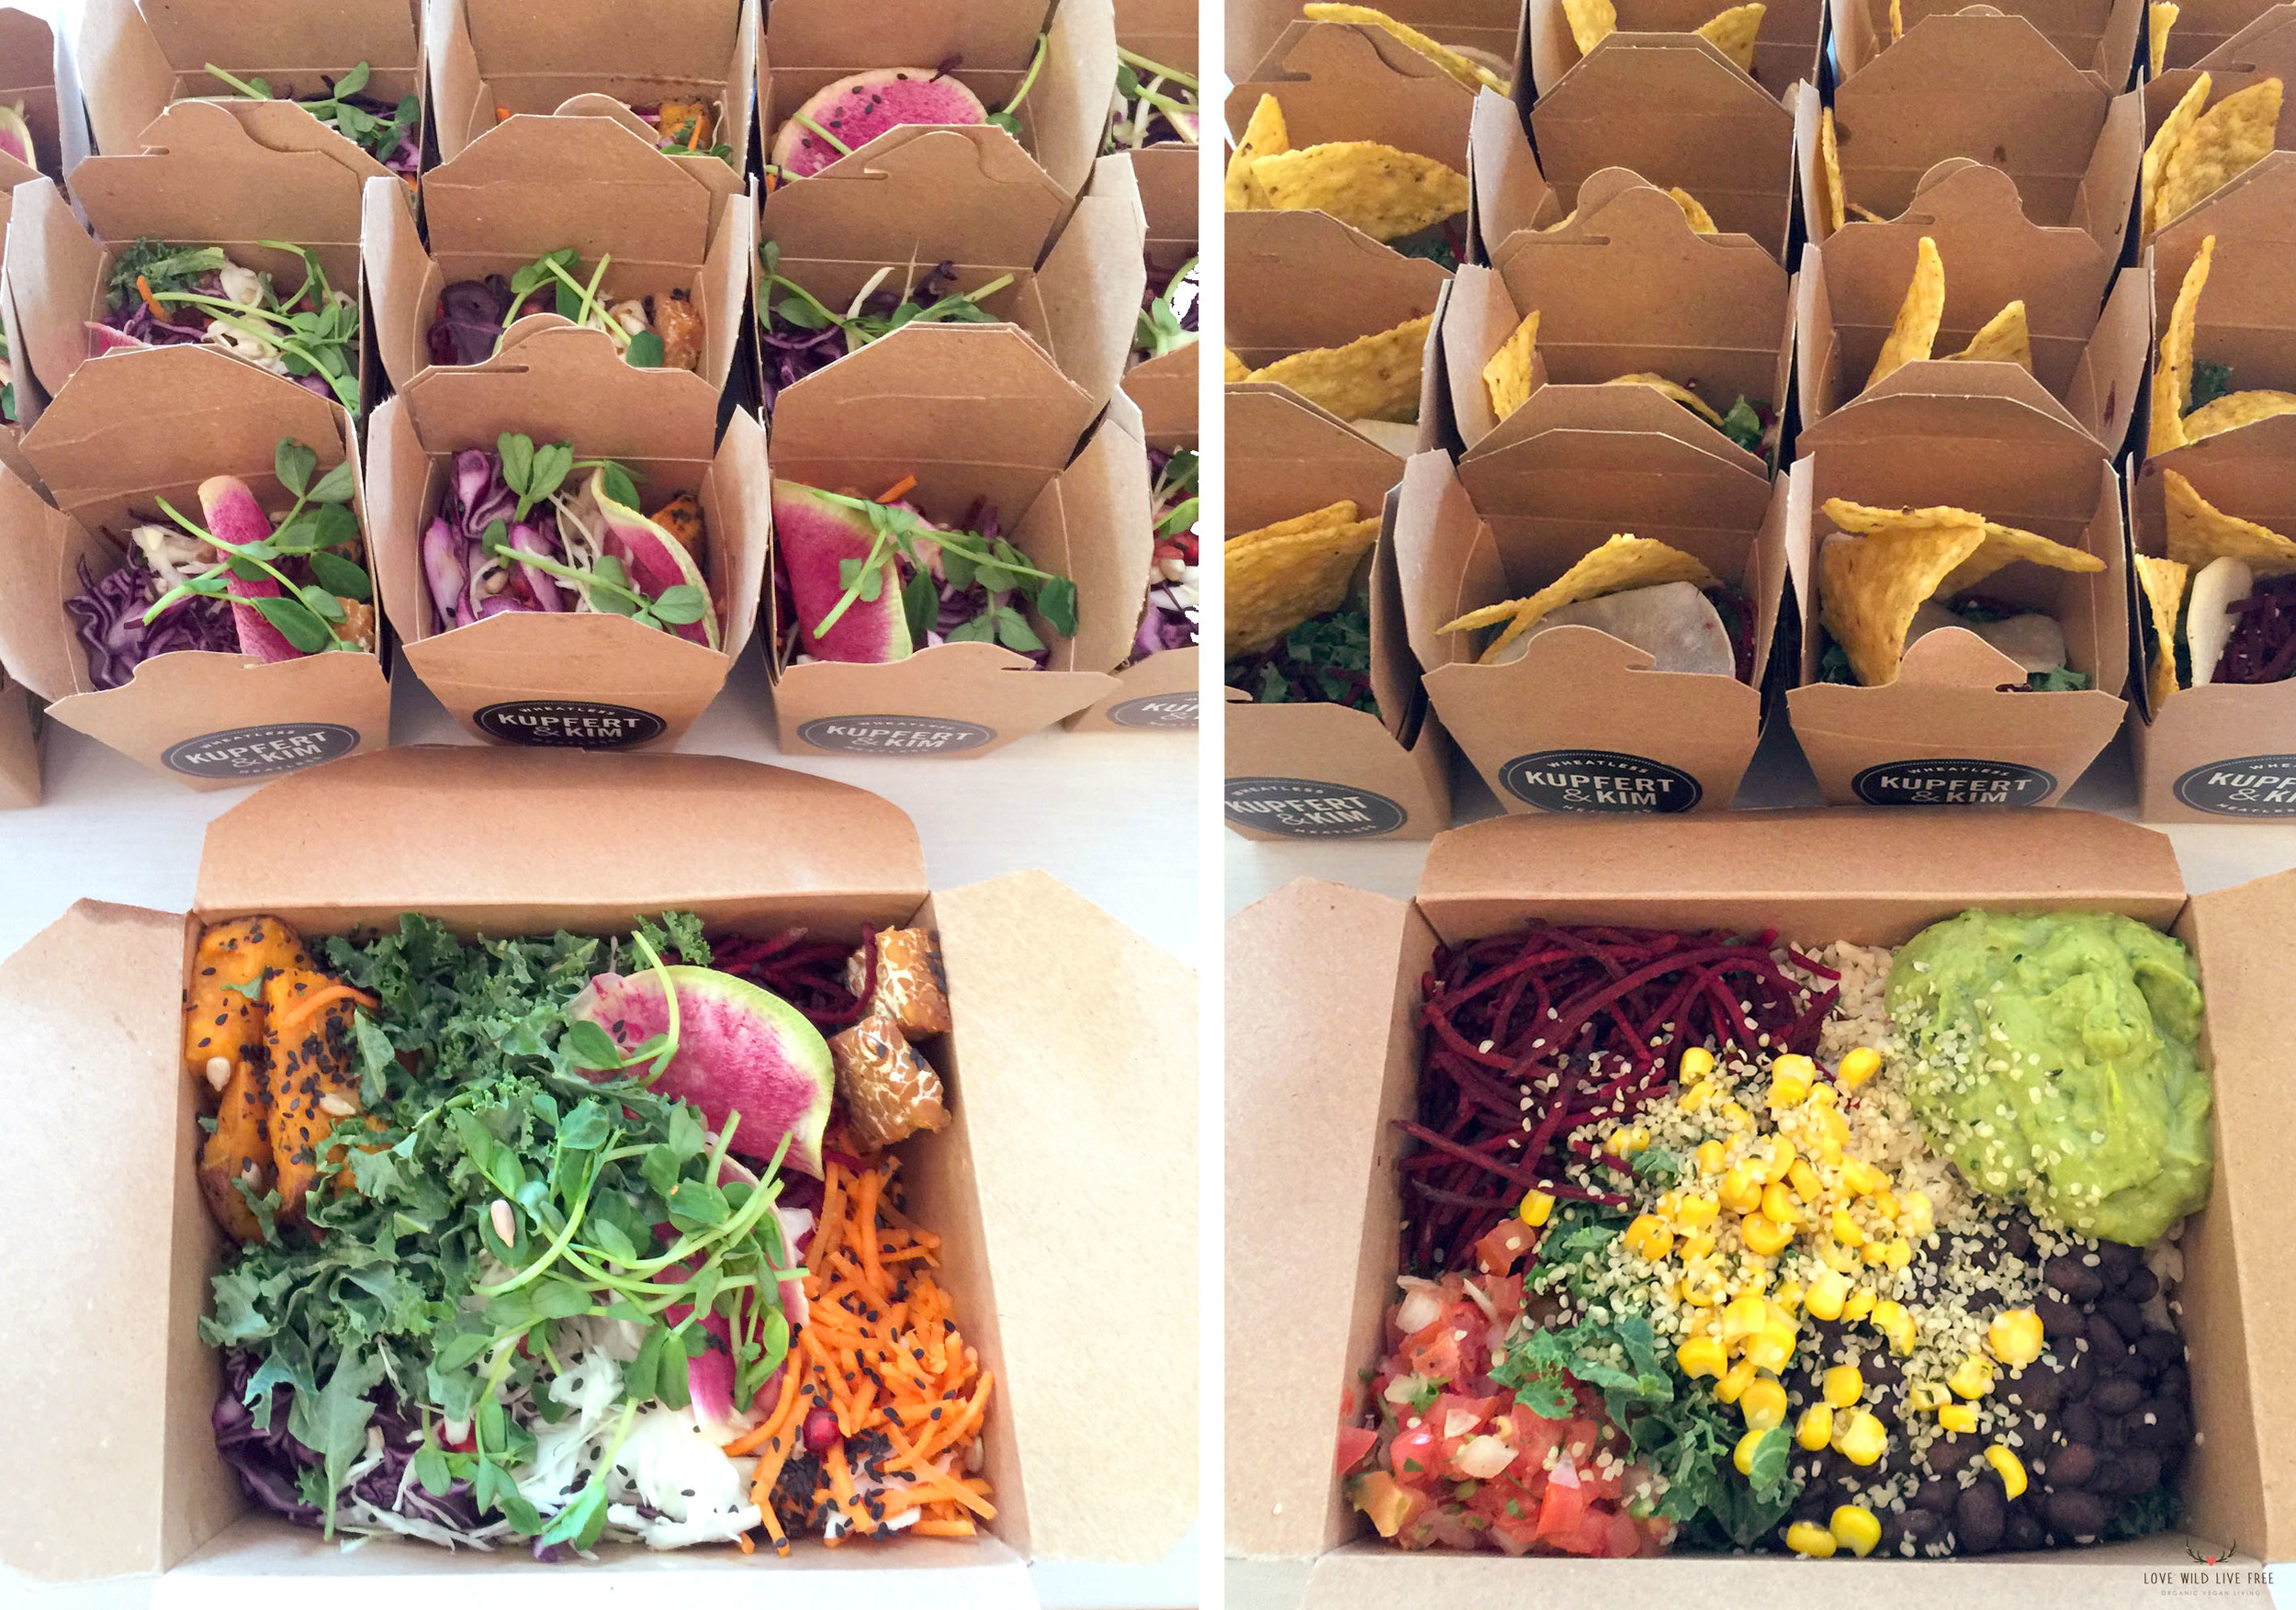 Kupfert and Kim : On the left, First Canadian Place (organic quinoa, organic tempeh, organic kale, roasted yam, pomegranate, beets, carrots, rainbow radish, purple cabbage, organic sprouts, sunflower and sesame seeds with maple chia sauce) and on the right, Oaxaca (brown rice, black beans, organic kale, beets, non-GMO corn, daikon, hemp seeds, organic tortilla chips, lime wedge with pico de gallo, guacamole and cashew cream.  Photo by: Love Wild Live Free.